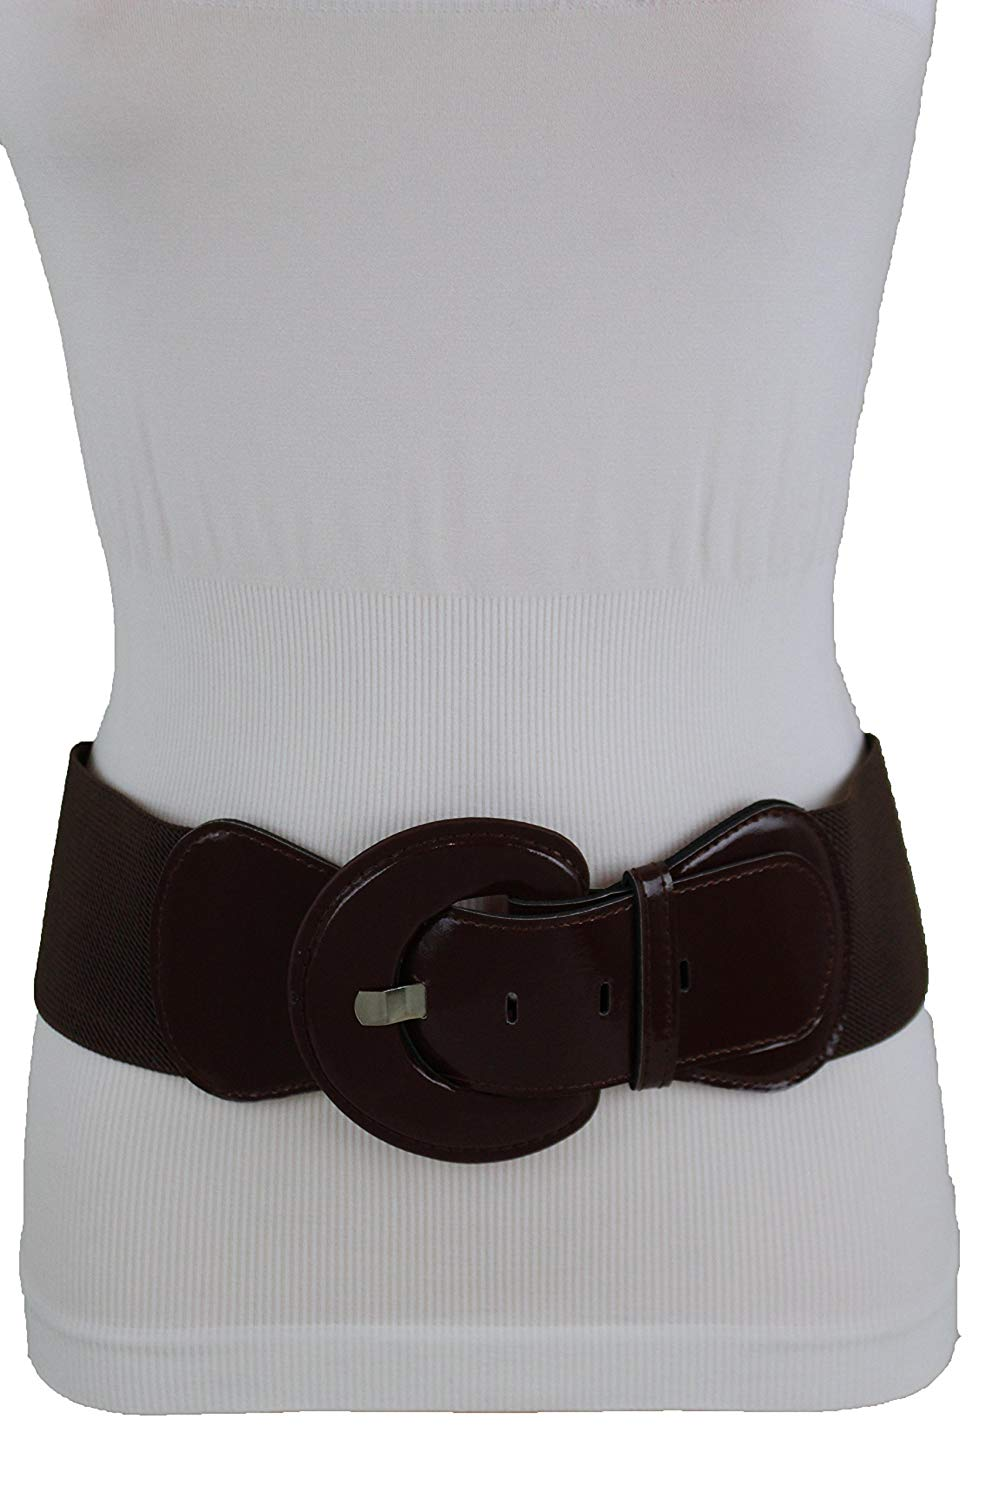 Women Wide Corset Belt Waist Hip Brown Elastic Faux Leather Plus Size L XL XXL